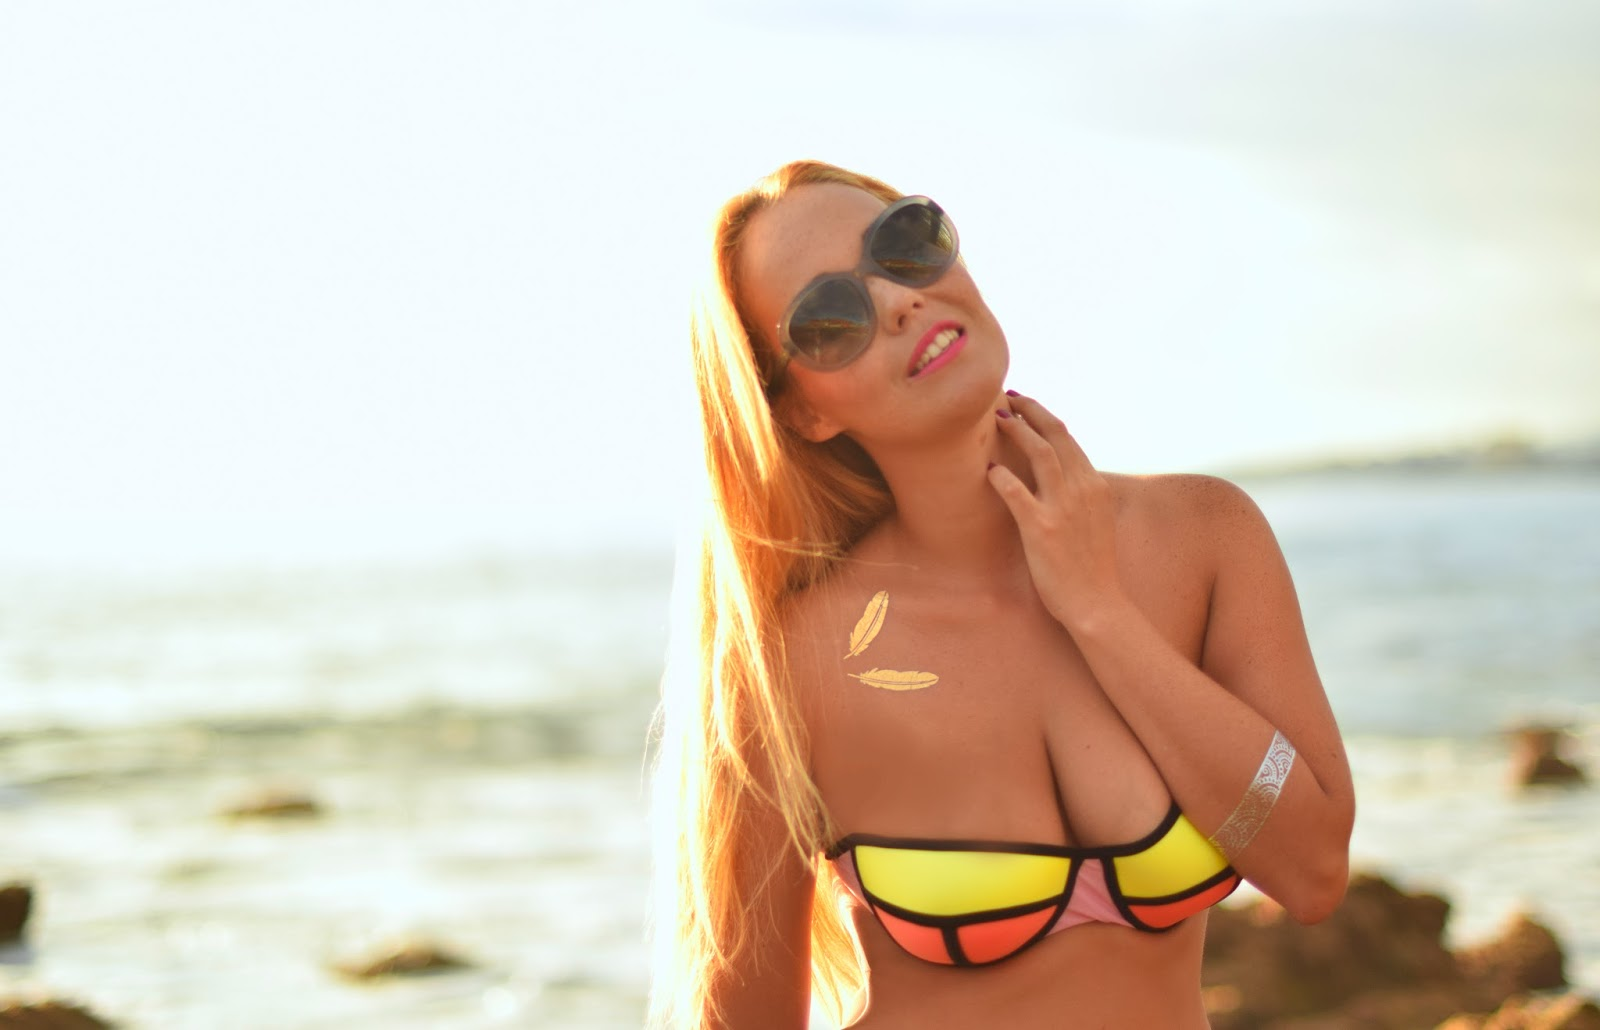 nery hdez, lucluc , bikini, flash tattoo, triangl clone, opticalh , optica herradores